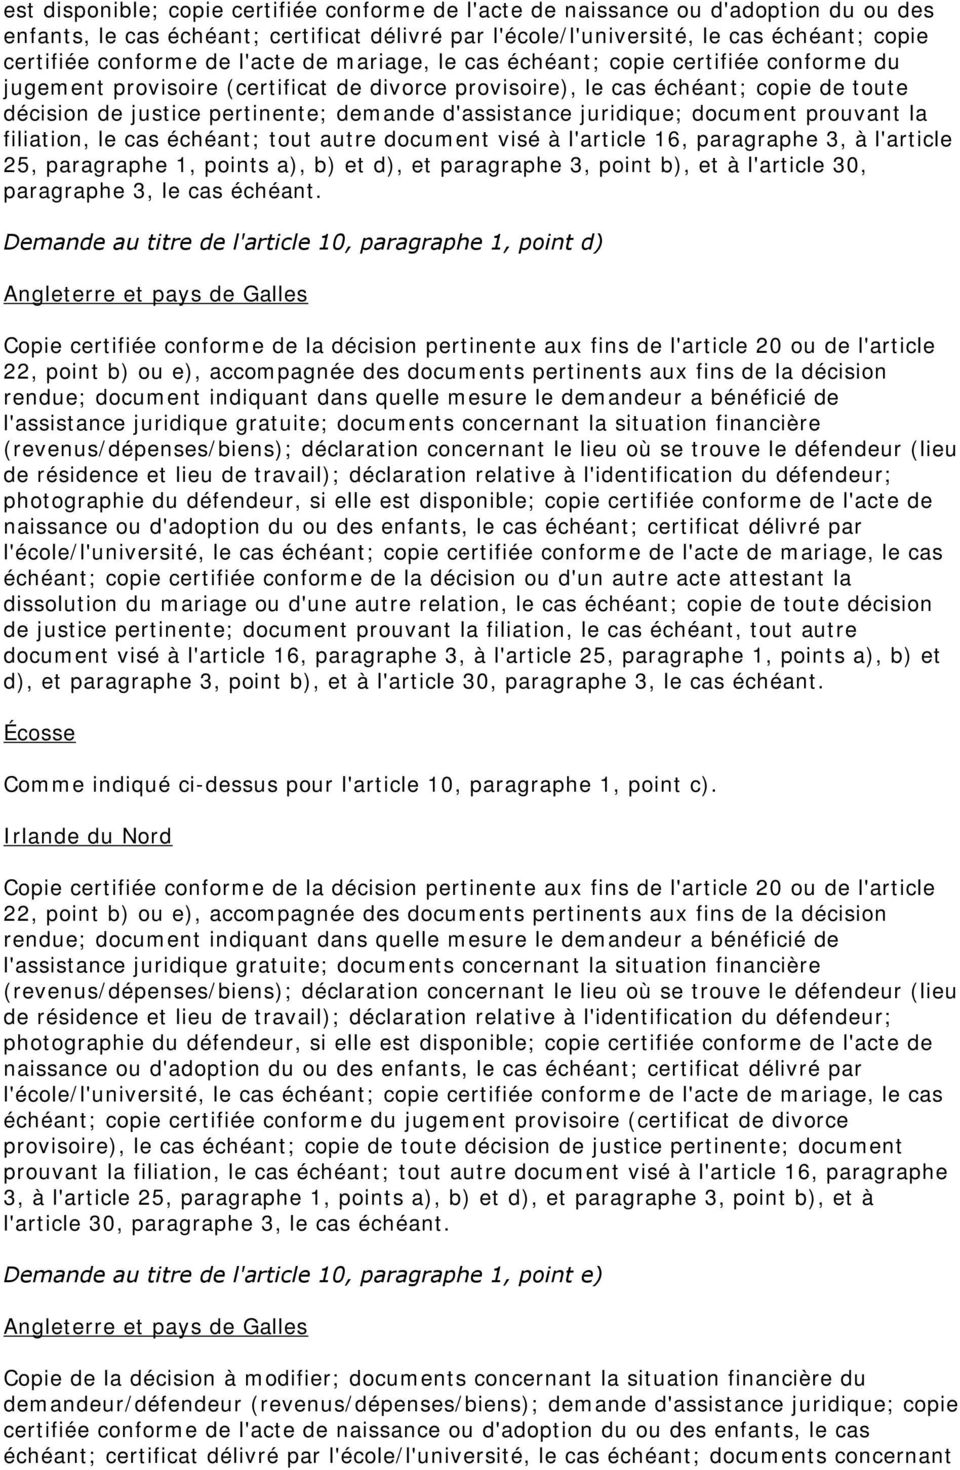 d'assistance juridique; document prouvant la filiation, le cas échéant; tout autre document visé à l'article 16, paragraphe 3, à l'article 25, paragraphe 1, points a), b) et d), et paragraphe 3,